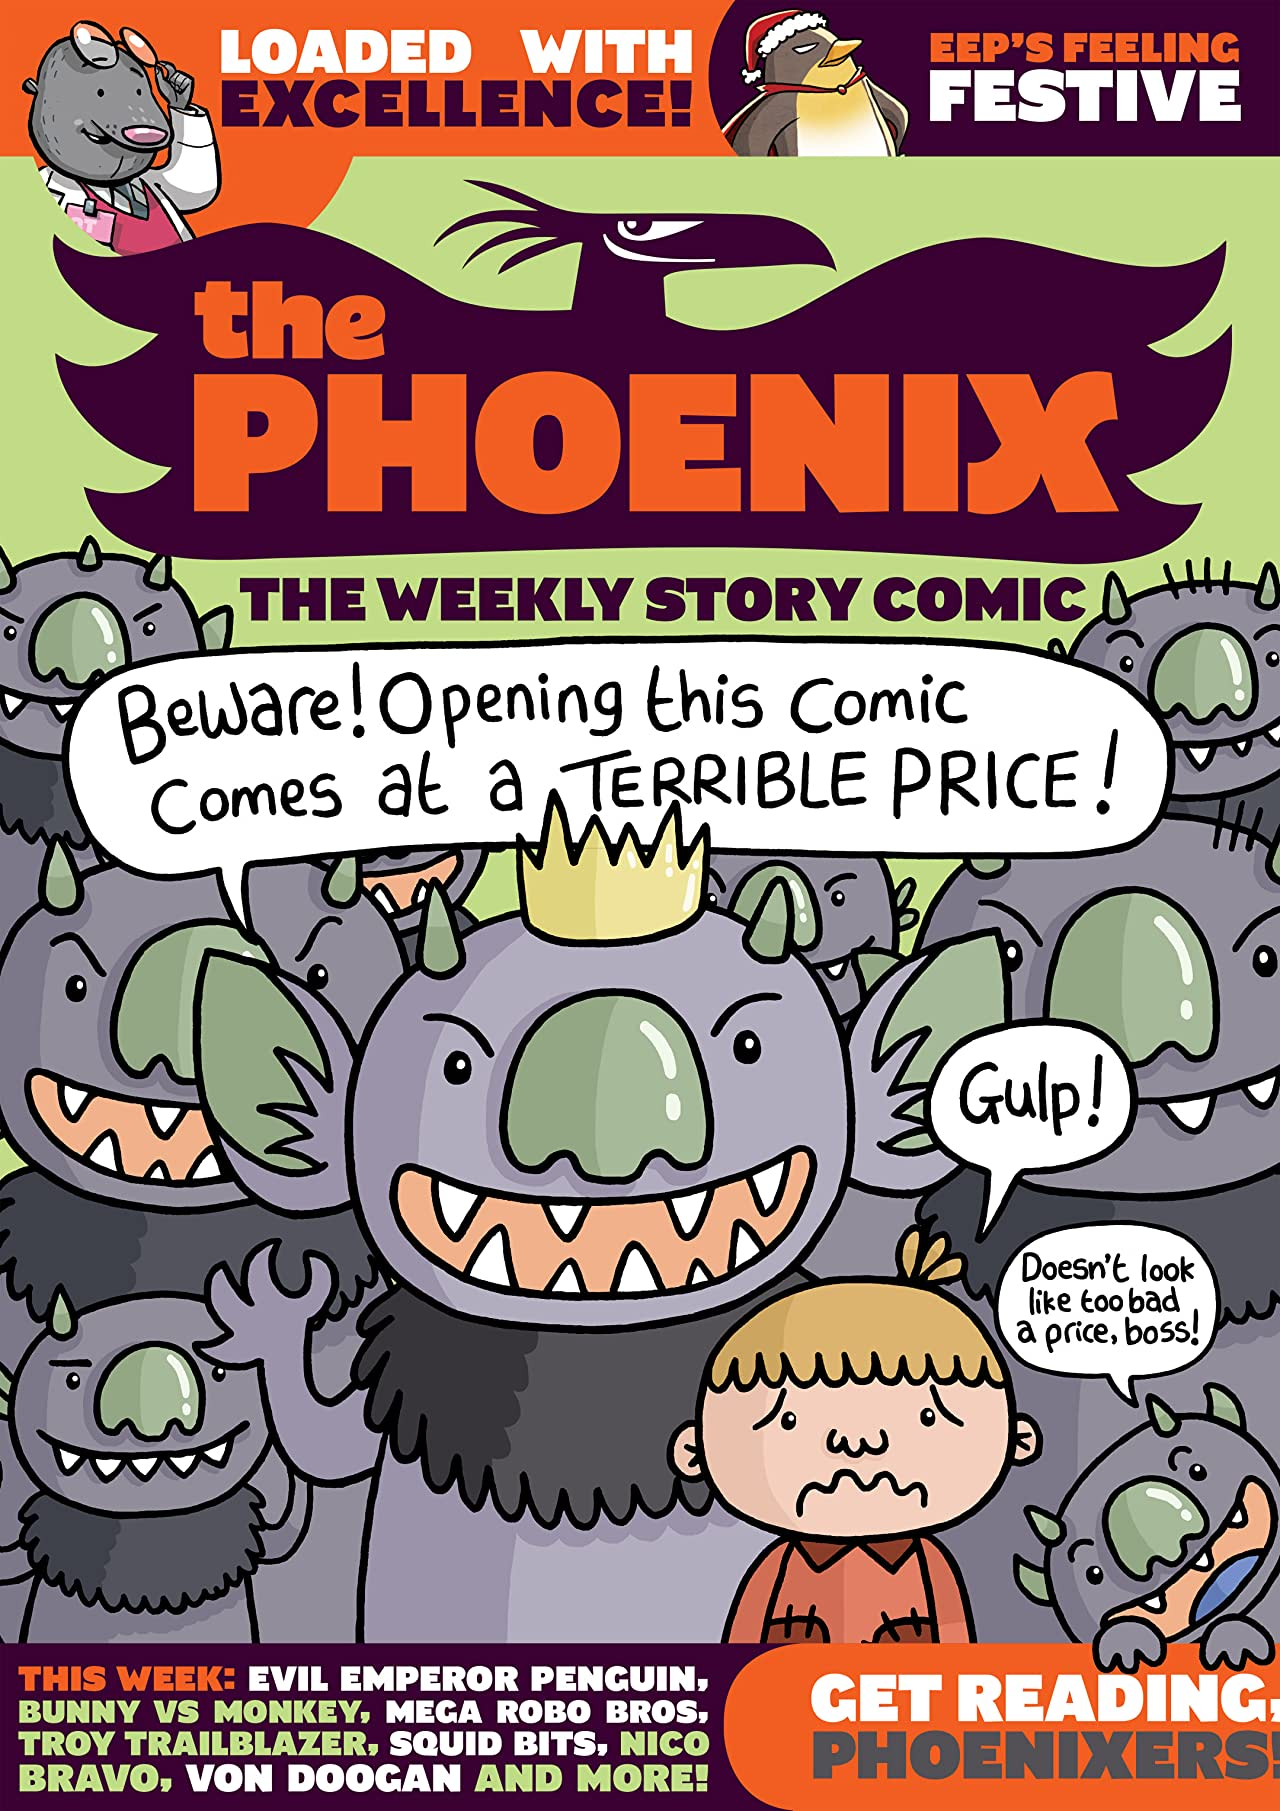 The Phoenix #154: The Weekly Story Comic